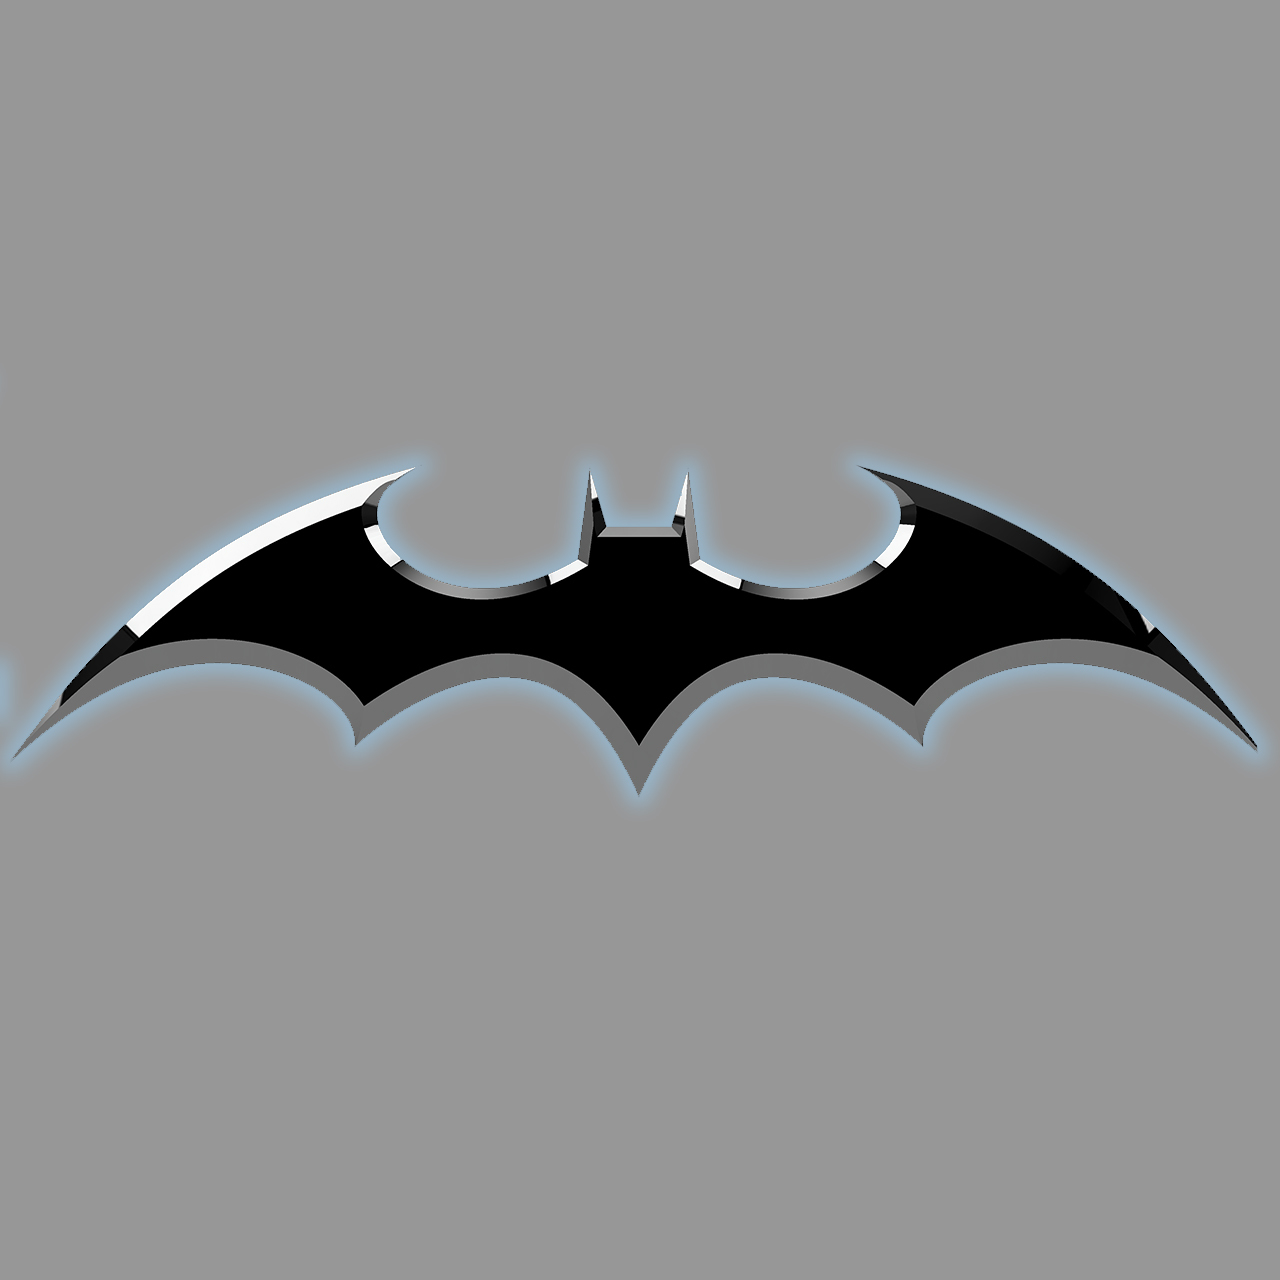 Untitled-1.jpg Download free STL file BATARANG COMICS V1 • 3D printer model, jediSam